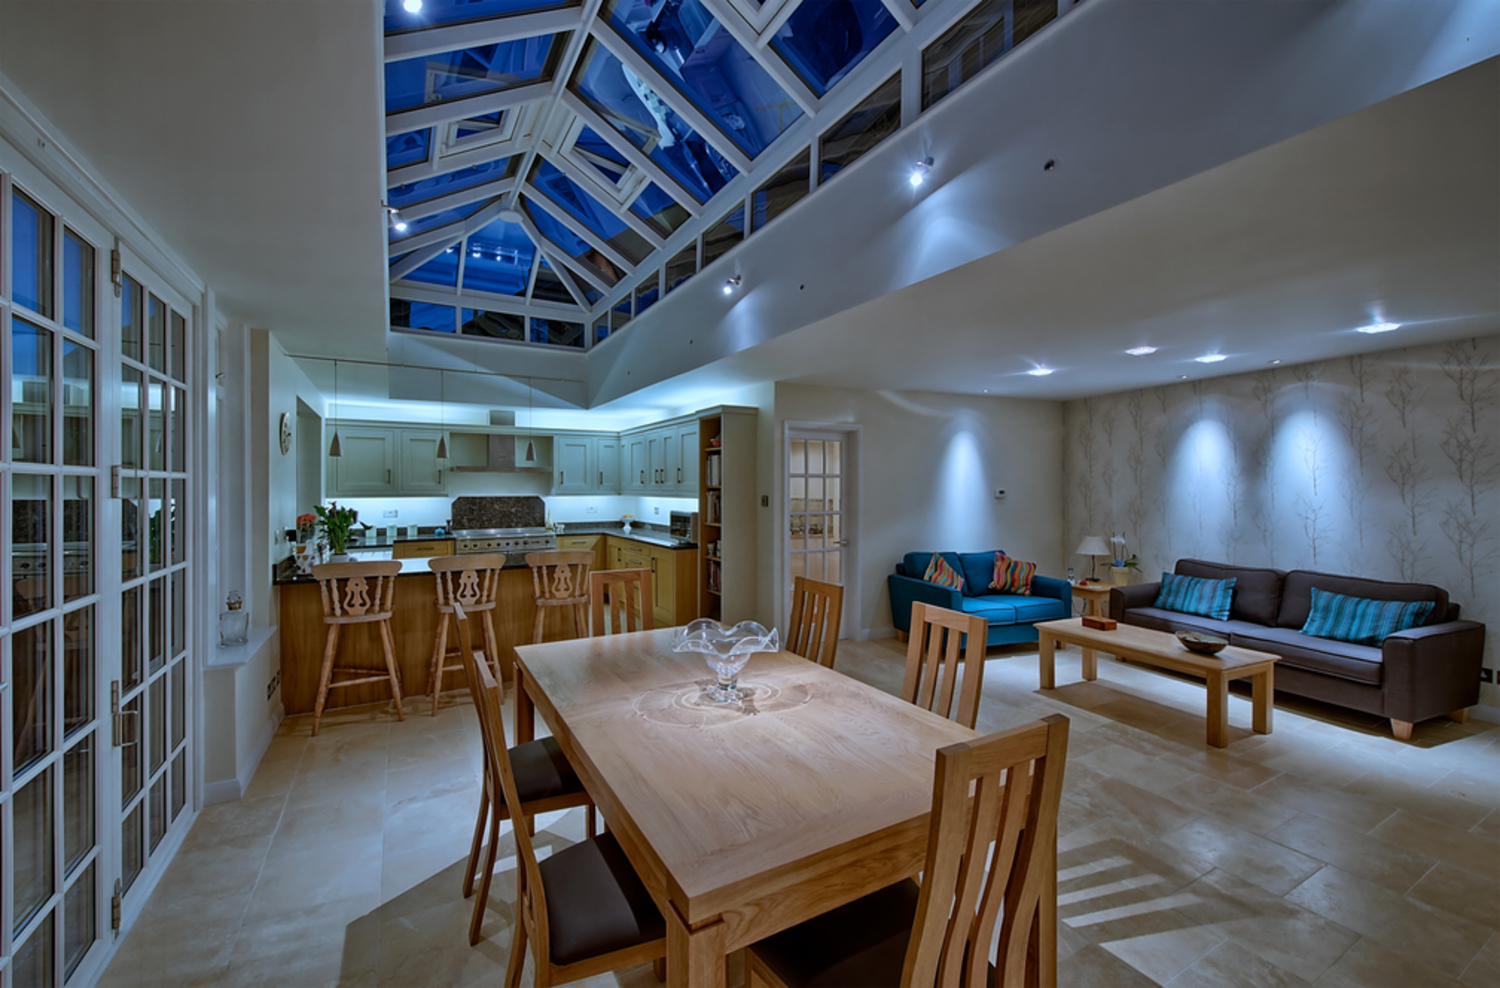 Dining room table night lighting of a house extension by Harvey Norman Architects St Albans